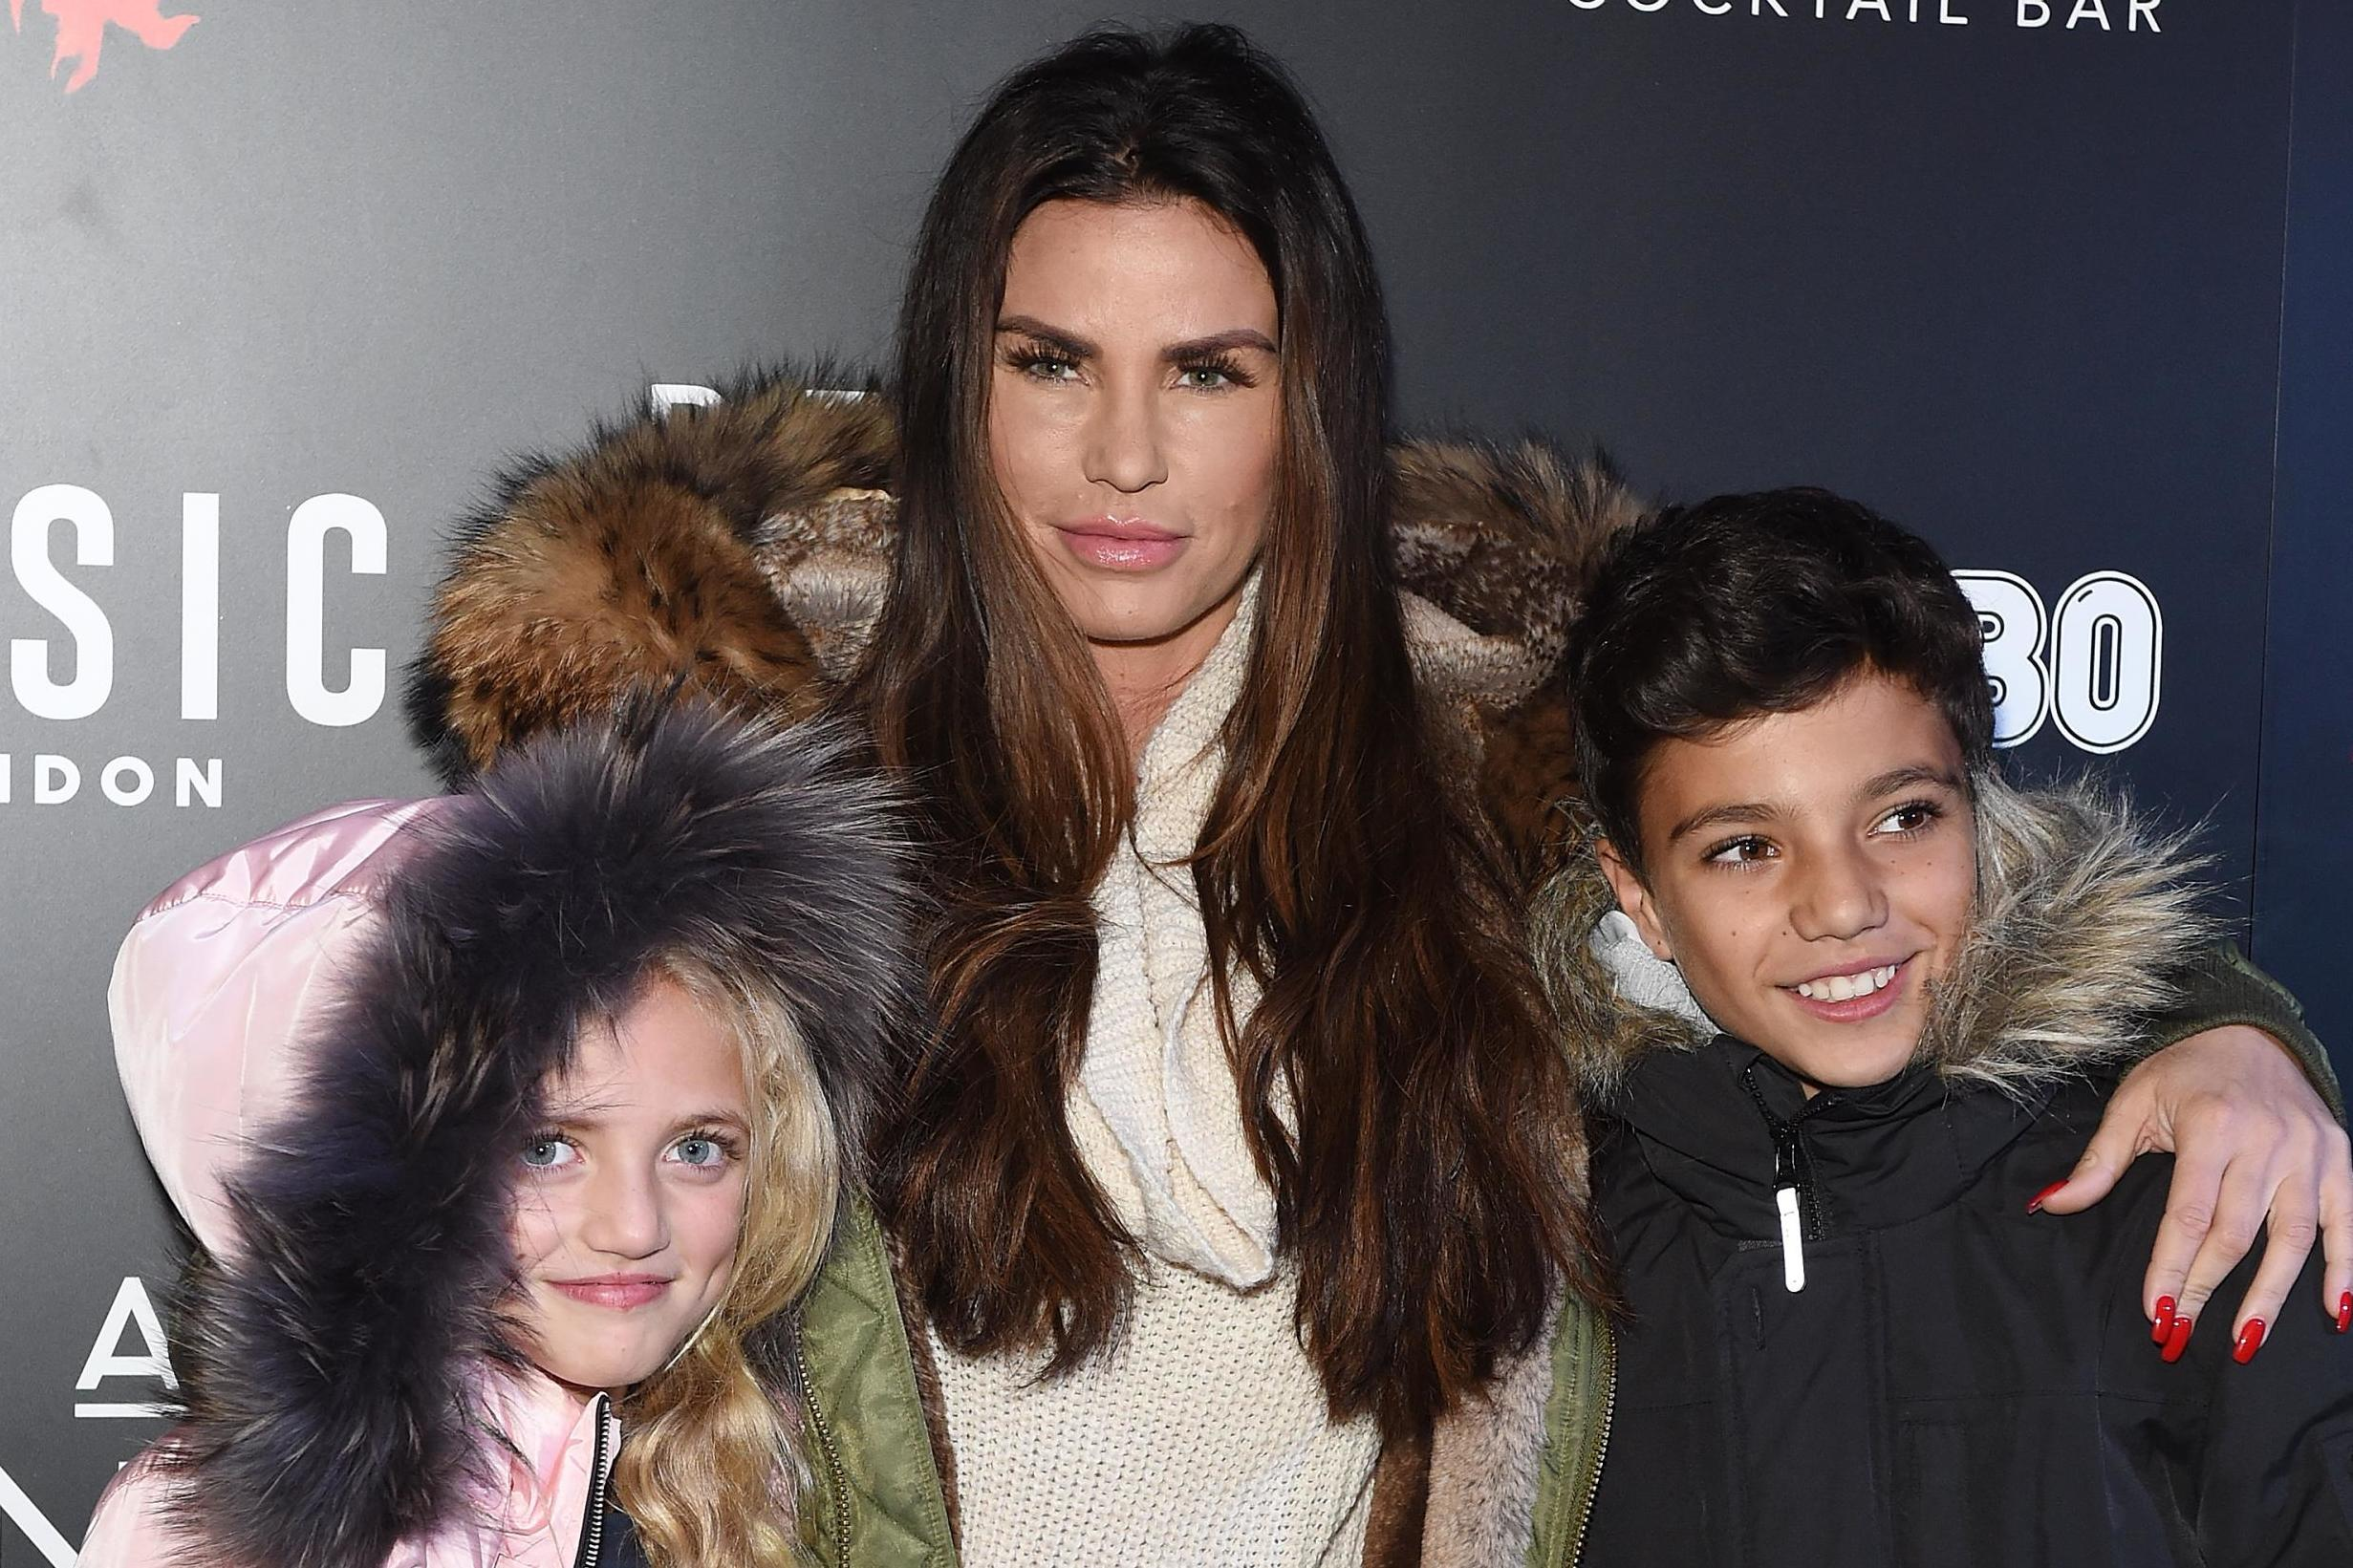 Katie Price declared bankrupt by court after failing to pay back debts